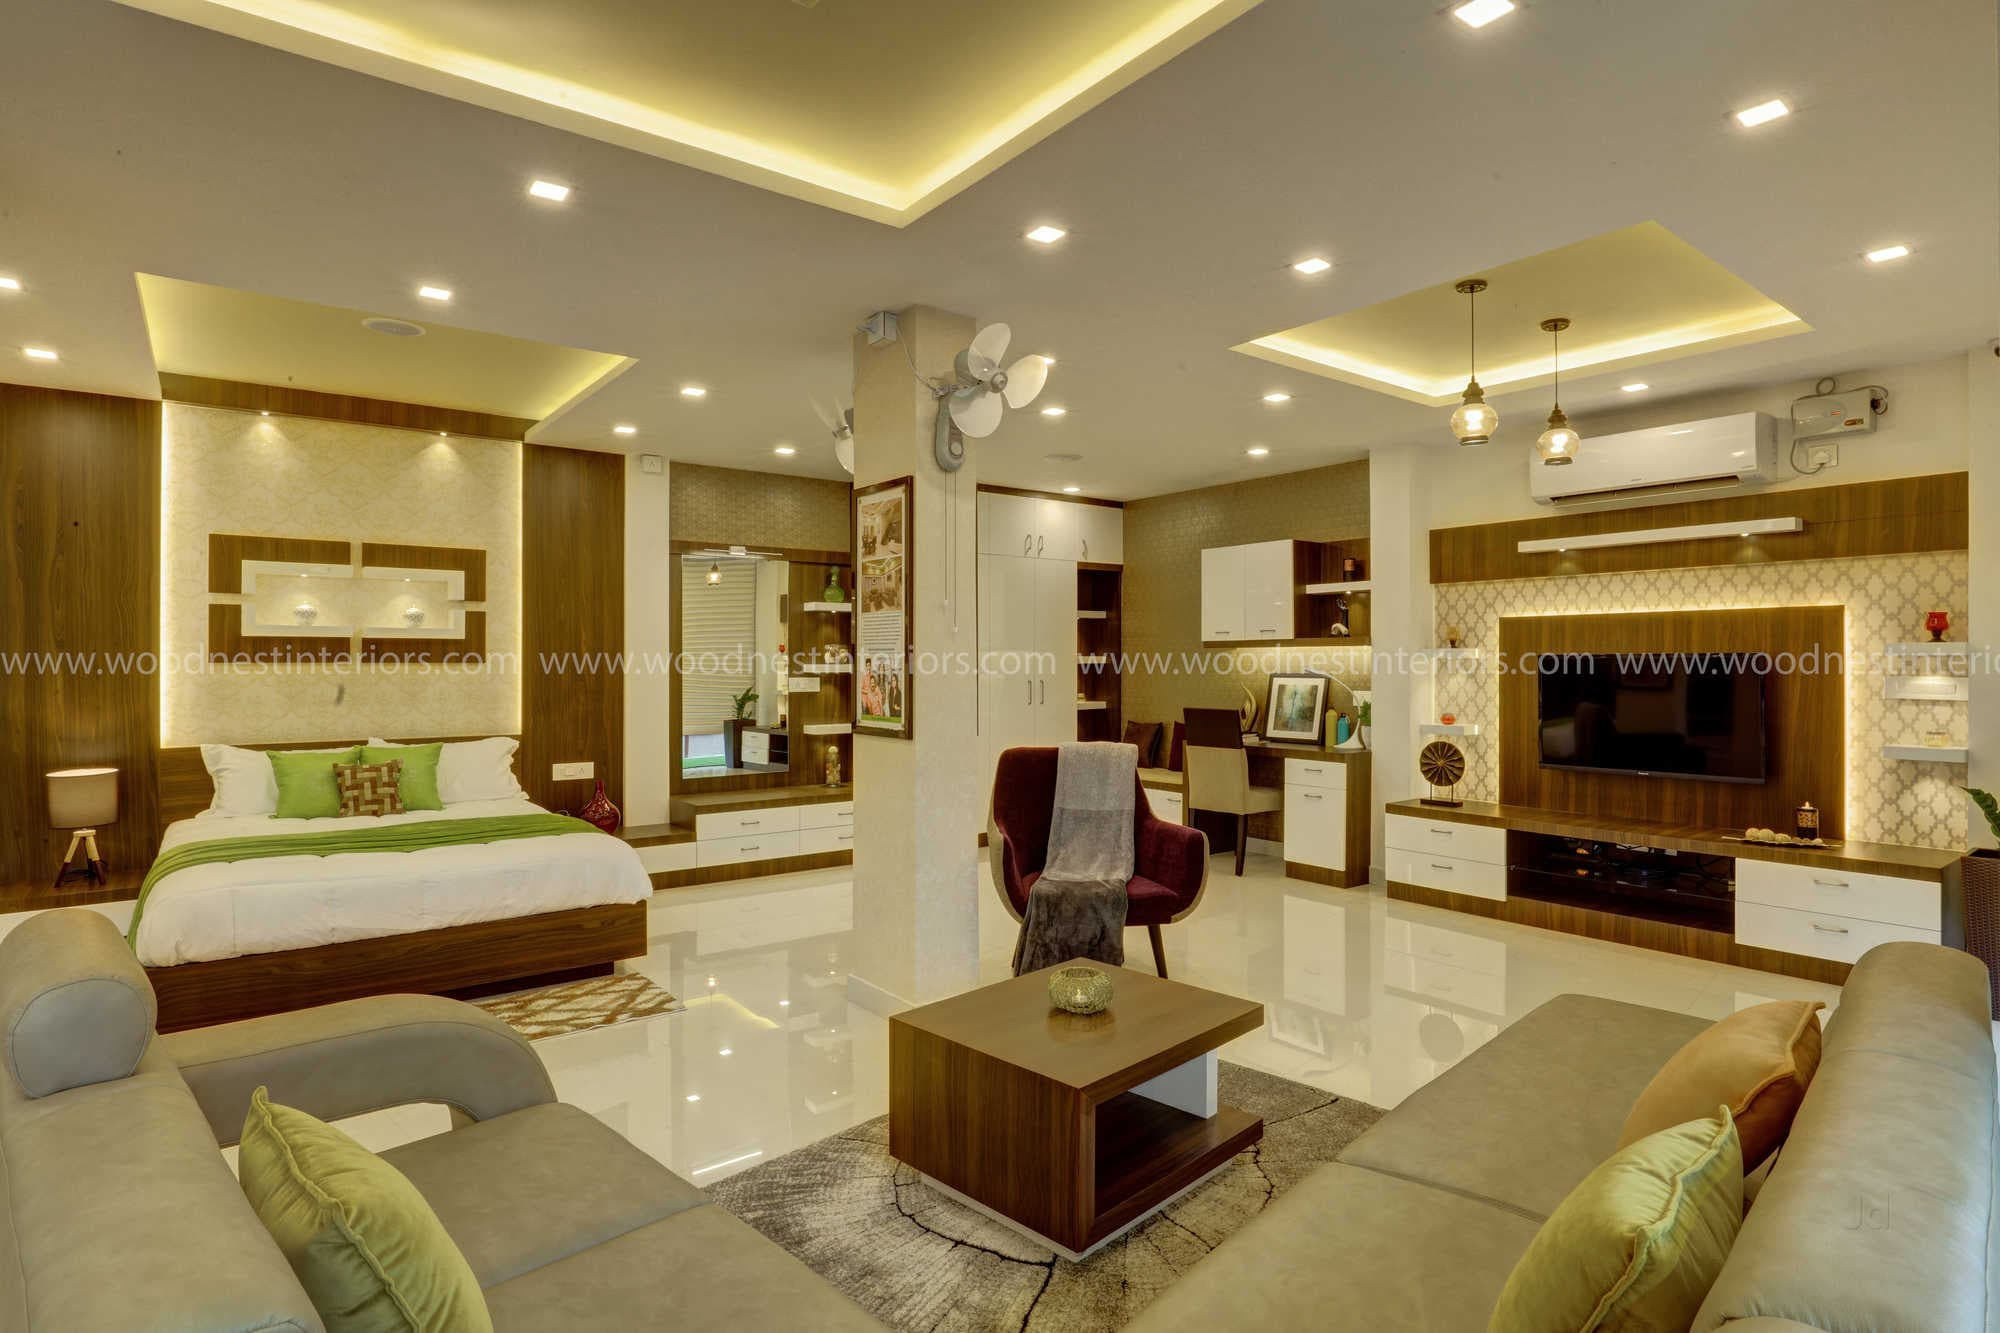 Top 100 Interior Designers In Thrissur   Best Interior Decorators   Justdial